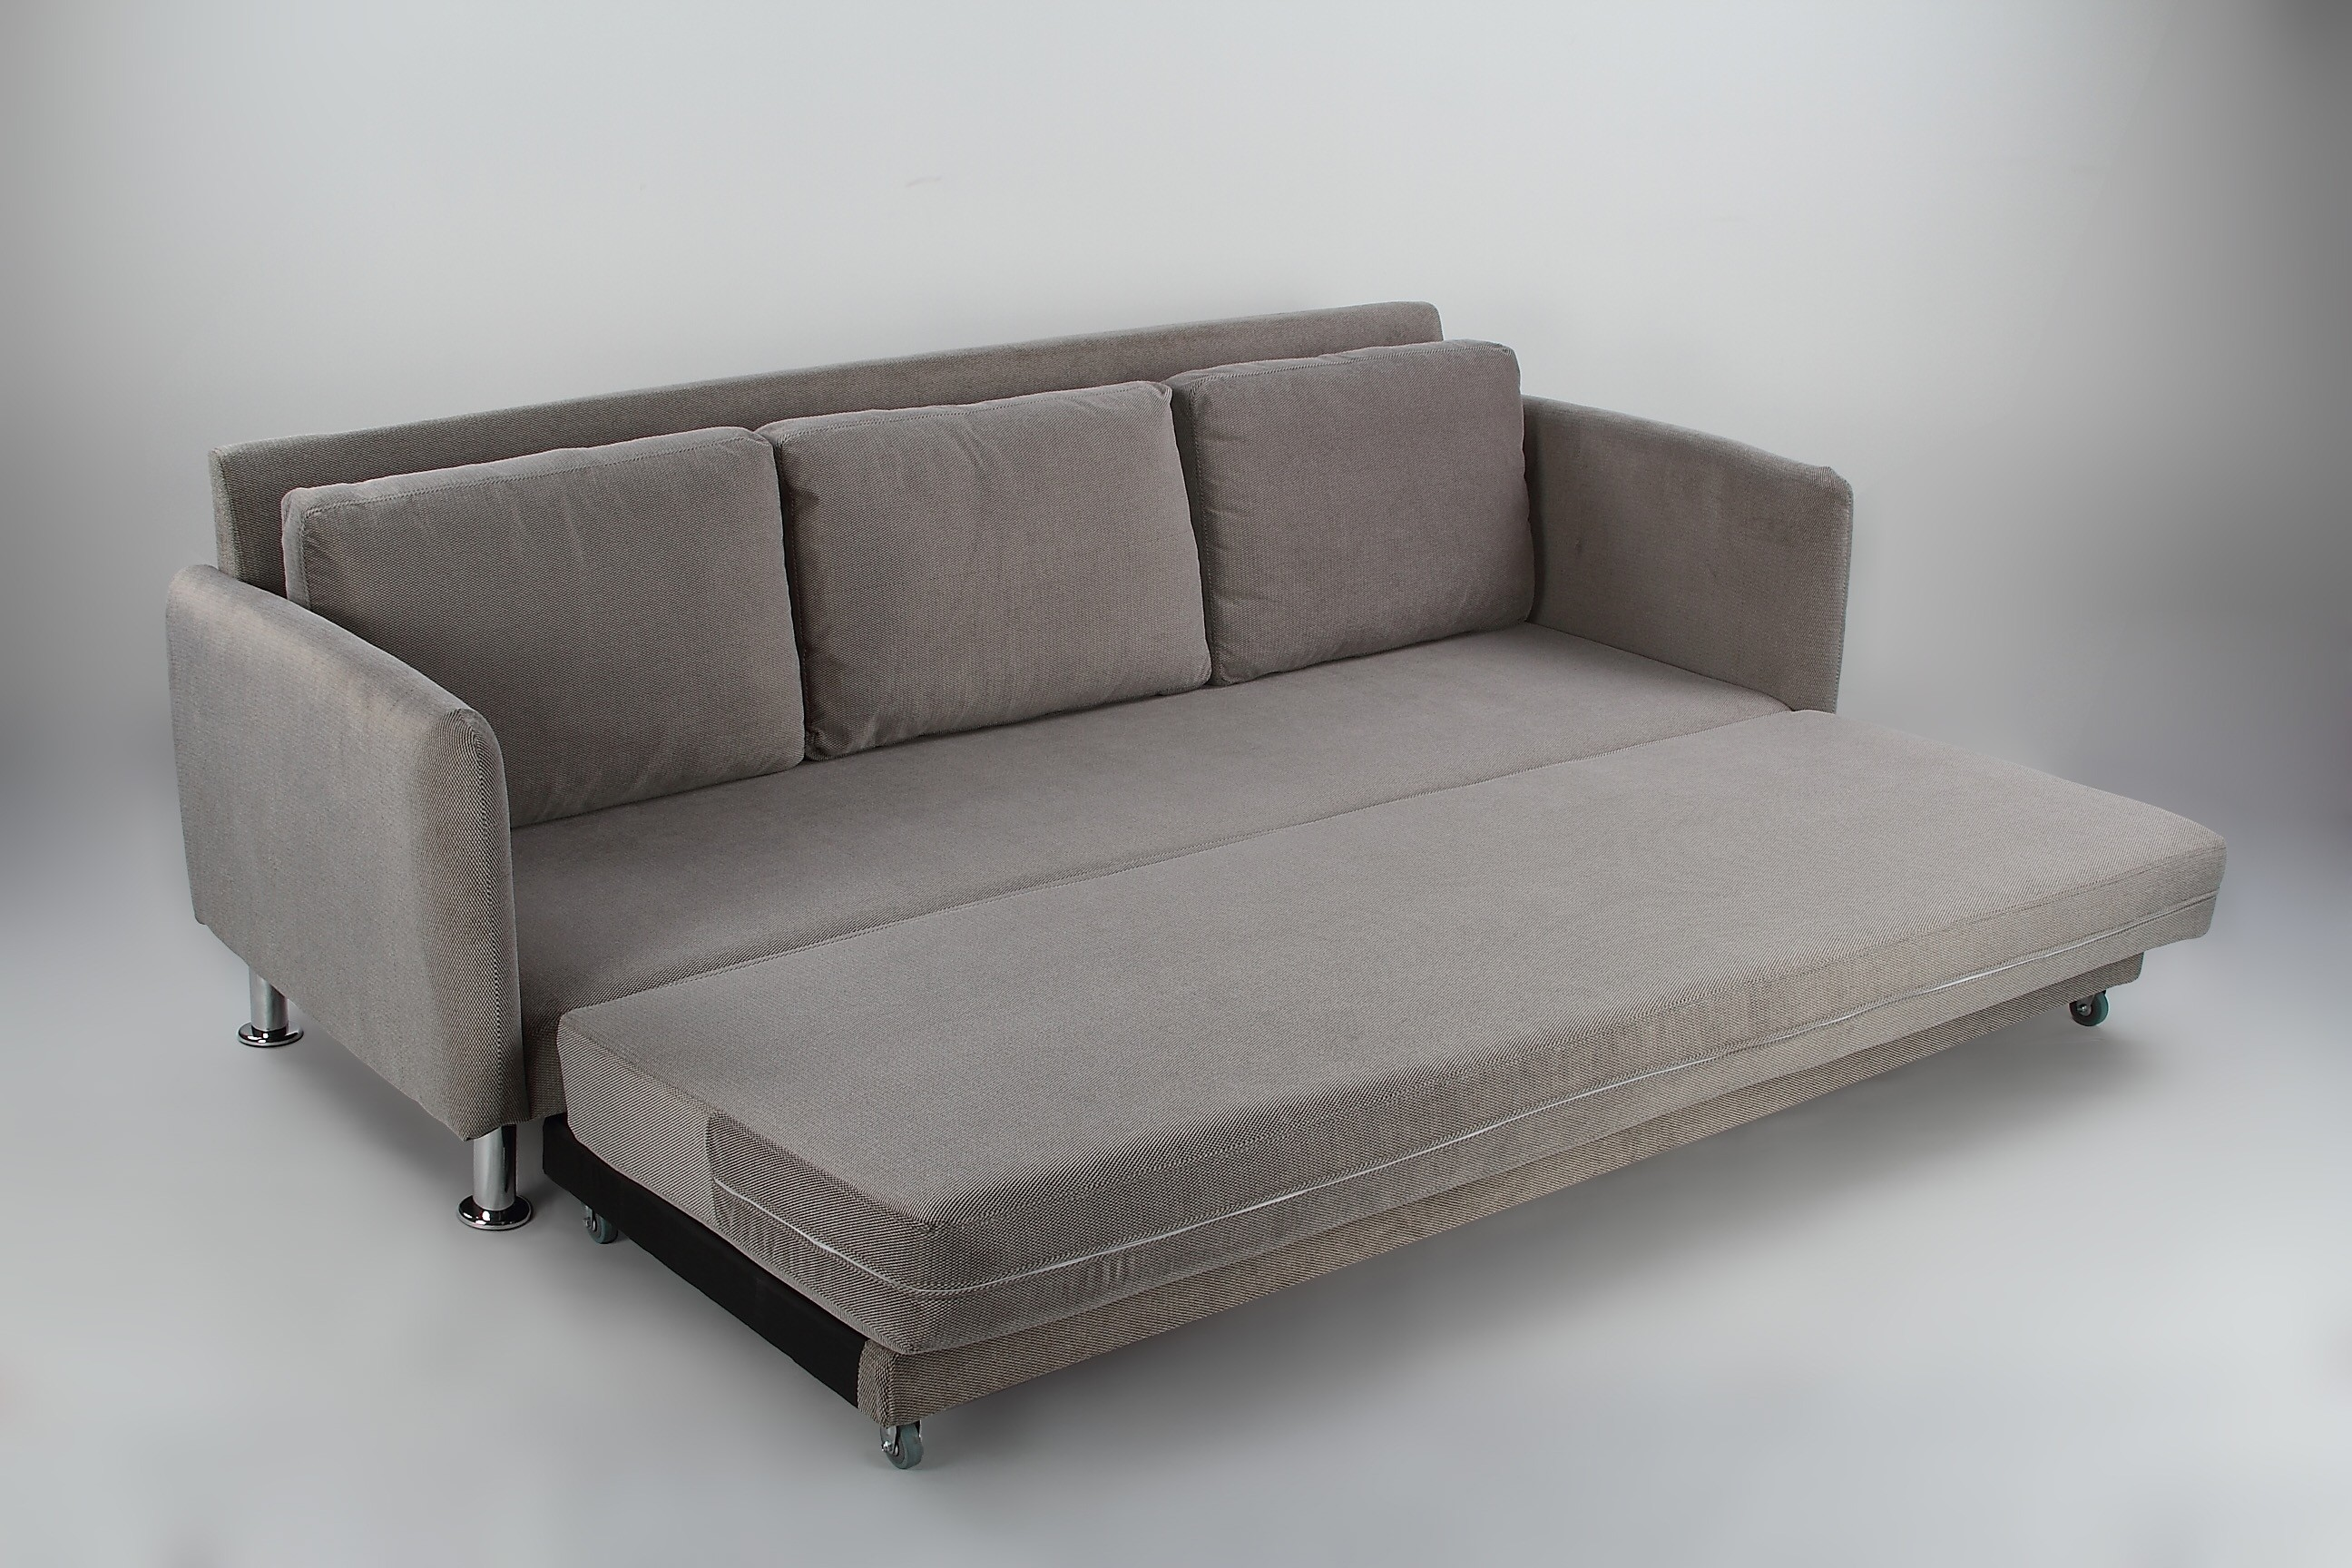 pull out sofa bed. Pull Out Sofa Bed. Display Gallery Item 1; 2 Bed